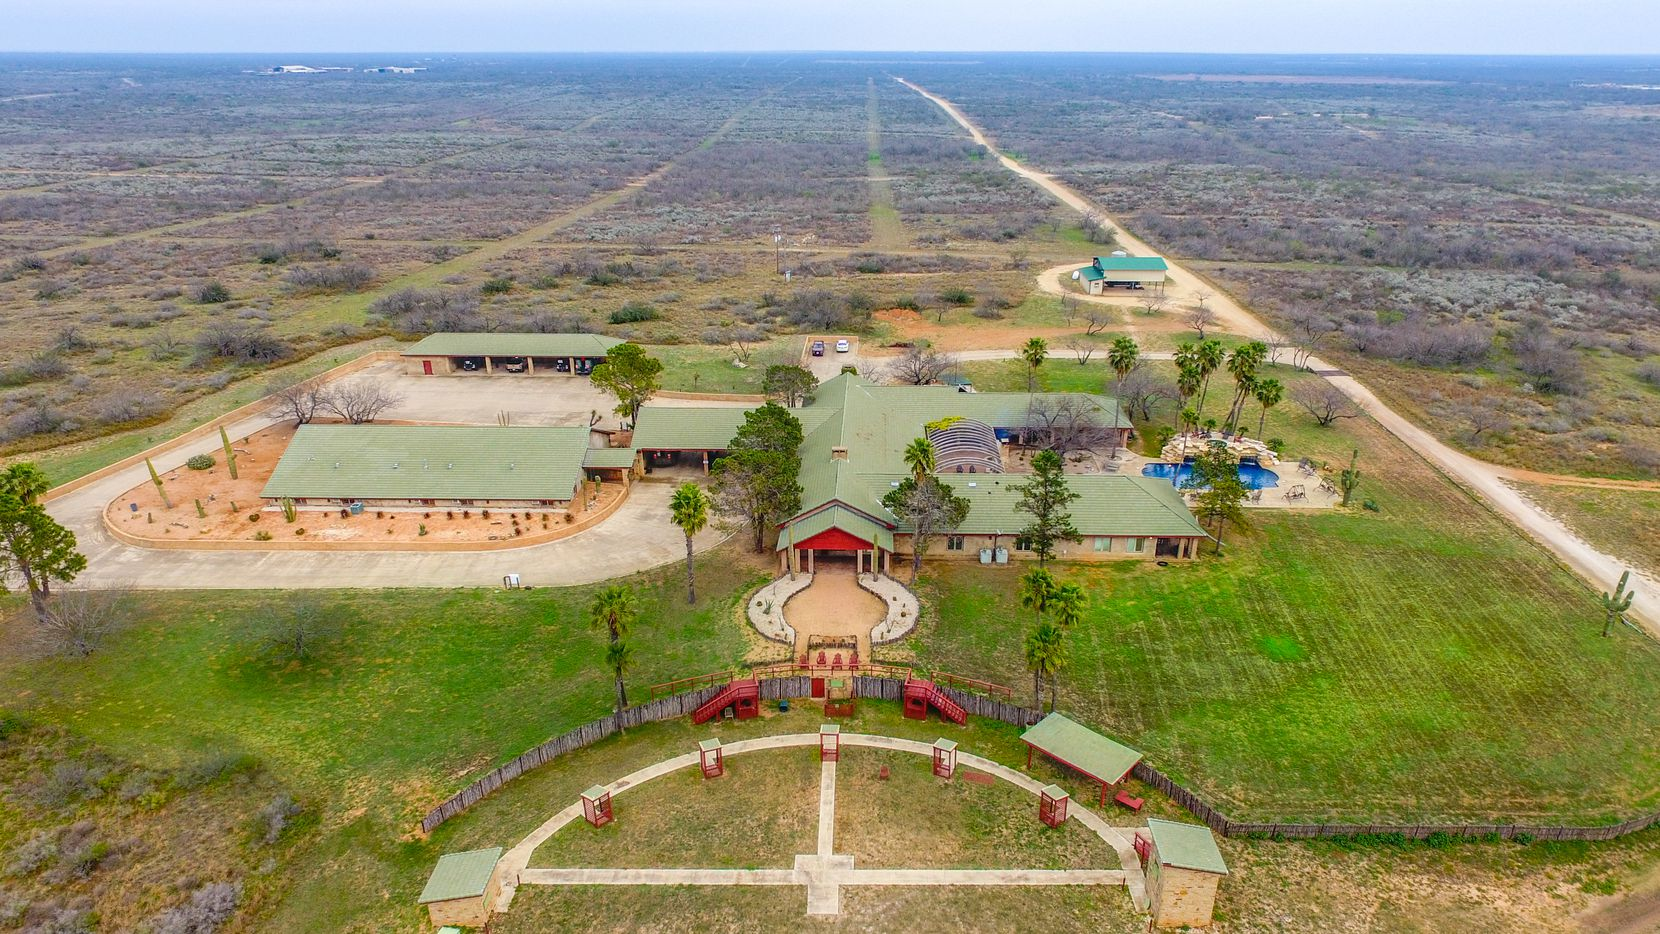 The La Bandera Ranch was listed for sale at more than $54 million and is southwest of San Antonio.